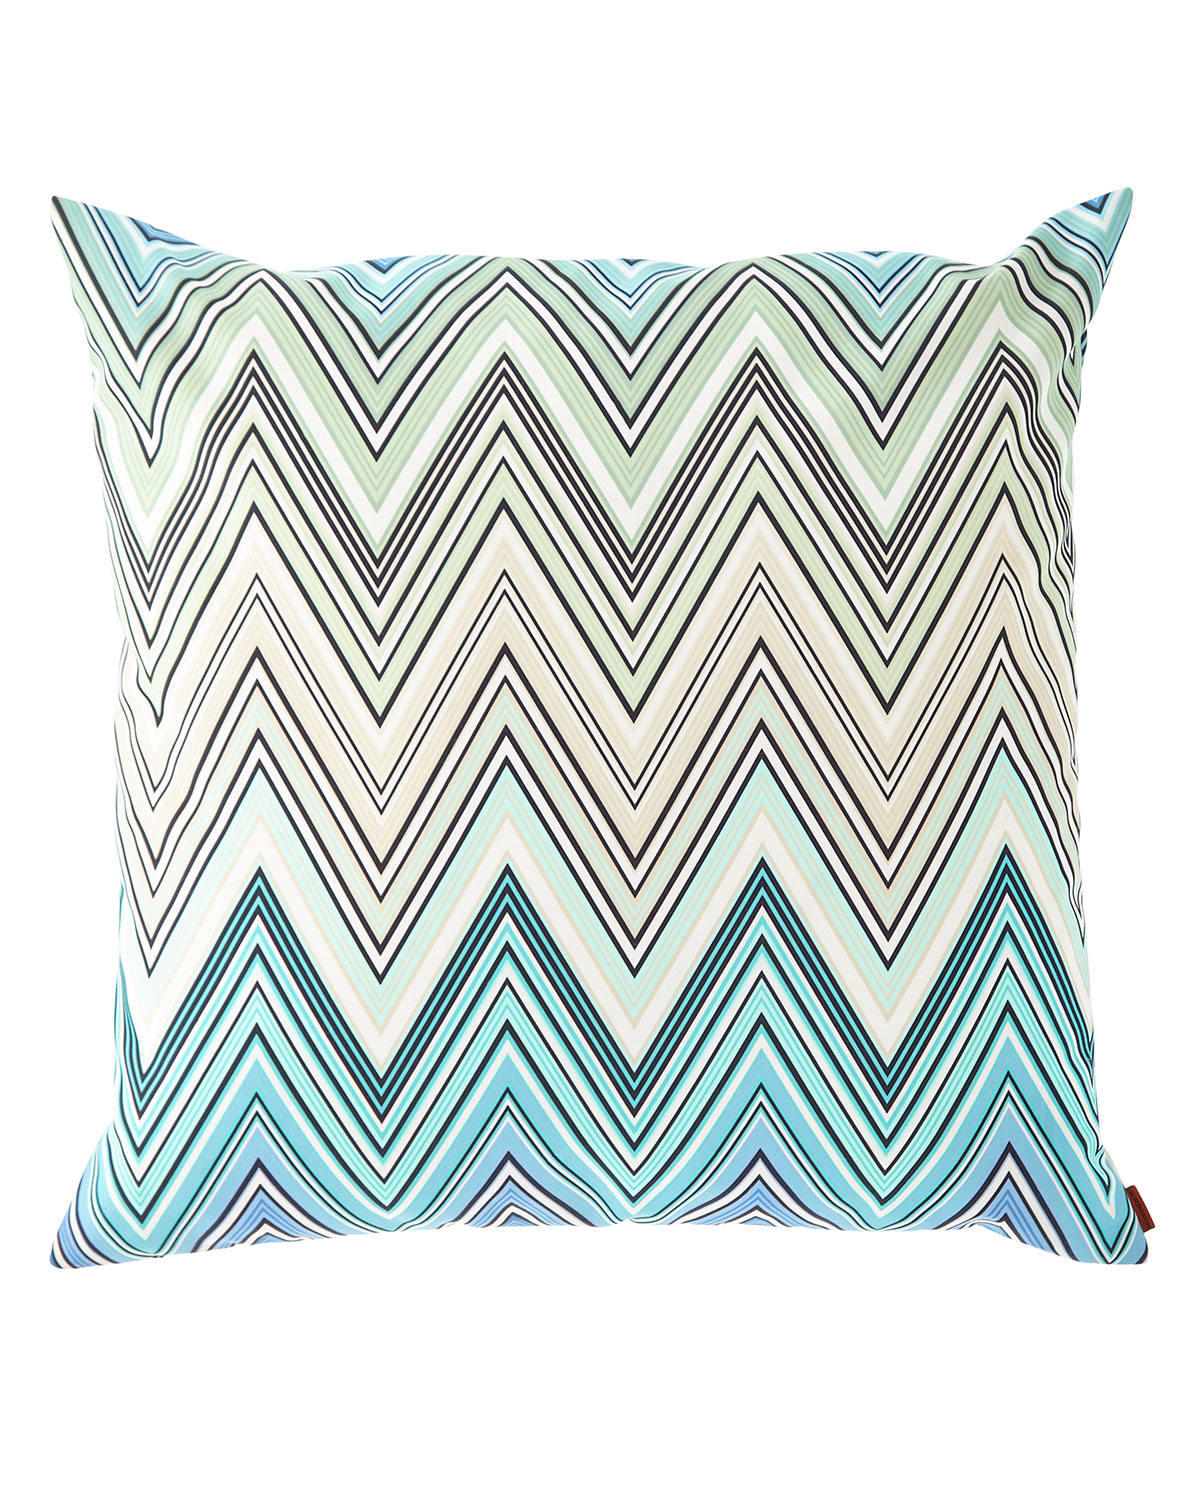 Missoni Home Kew Outdoor Pillow 24 Sq Neiman Marcus